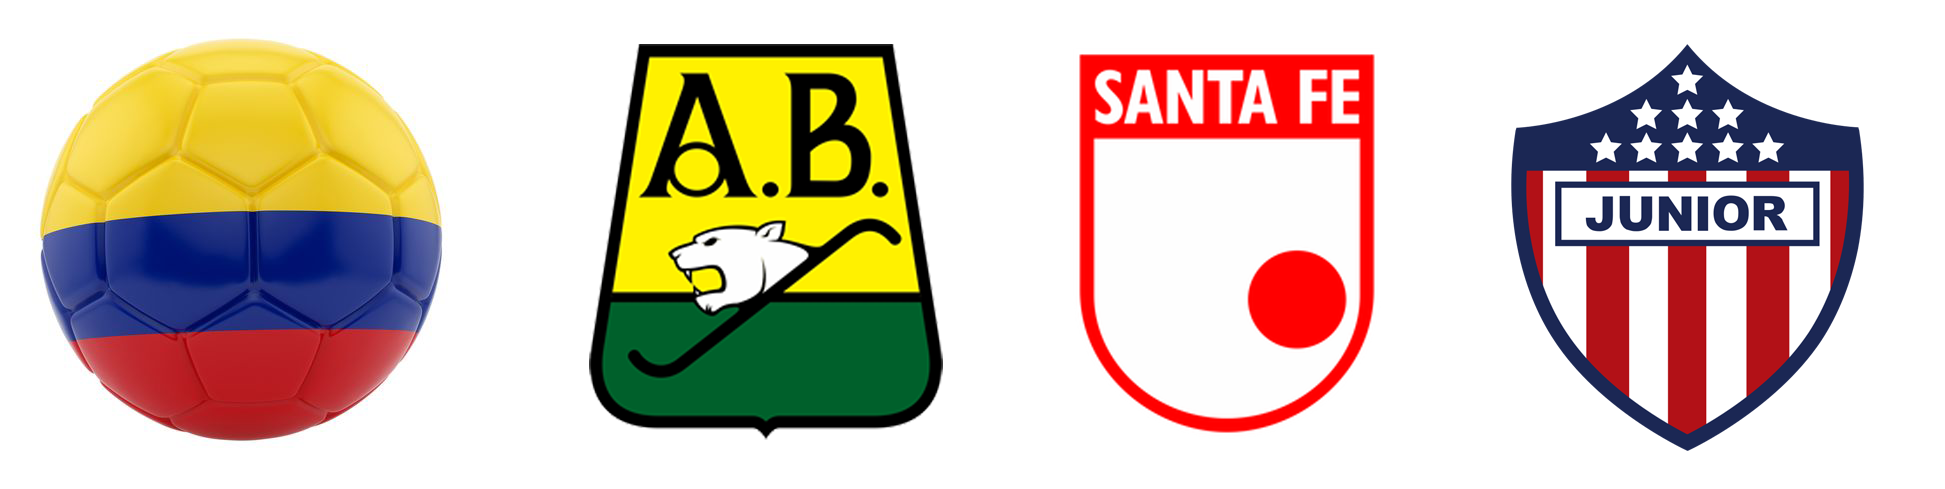 Colombia Clubs.png